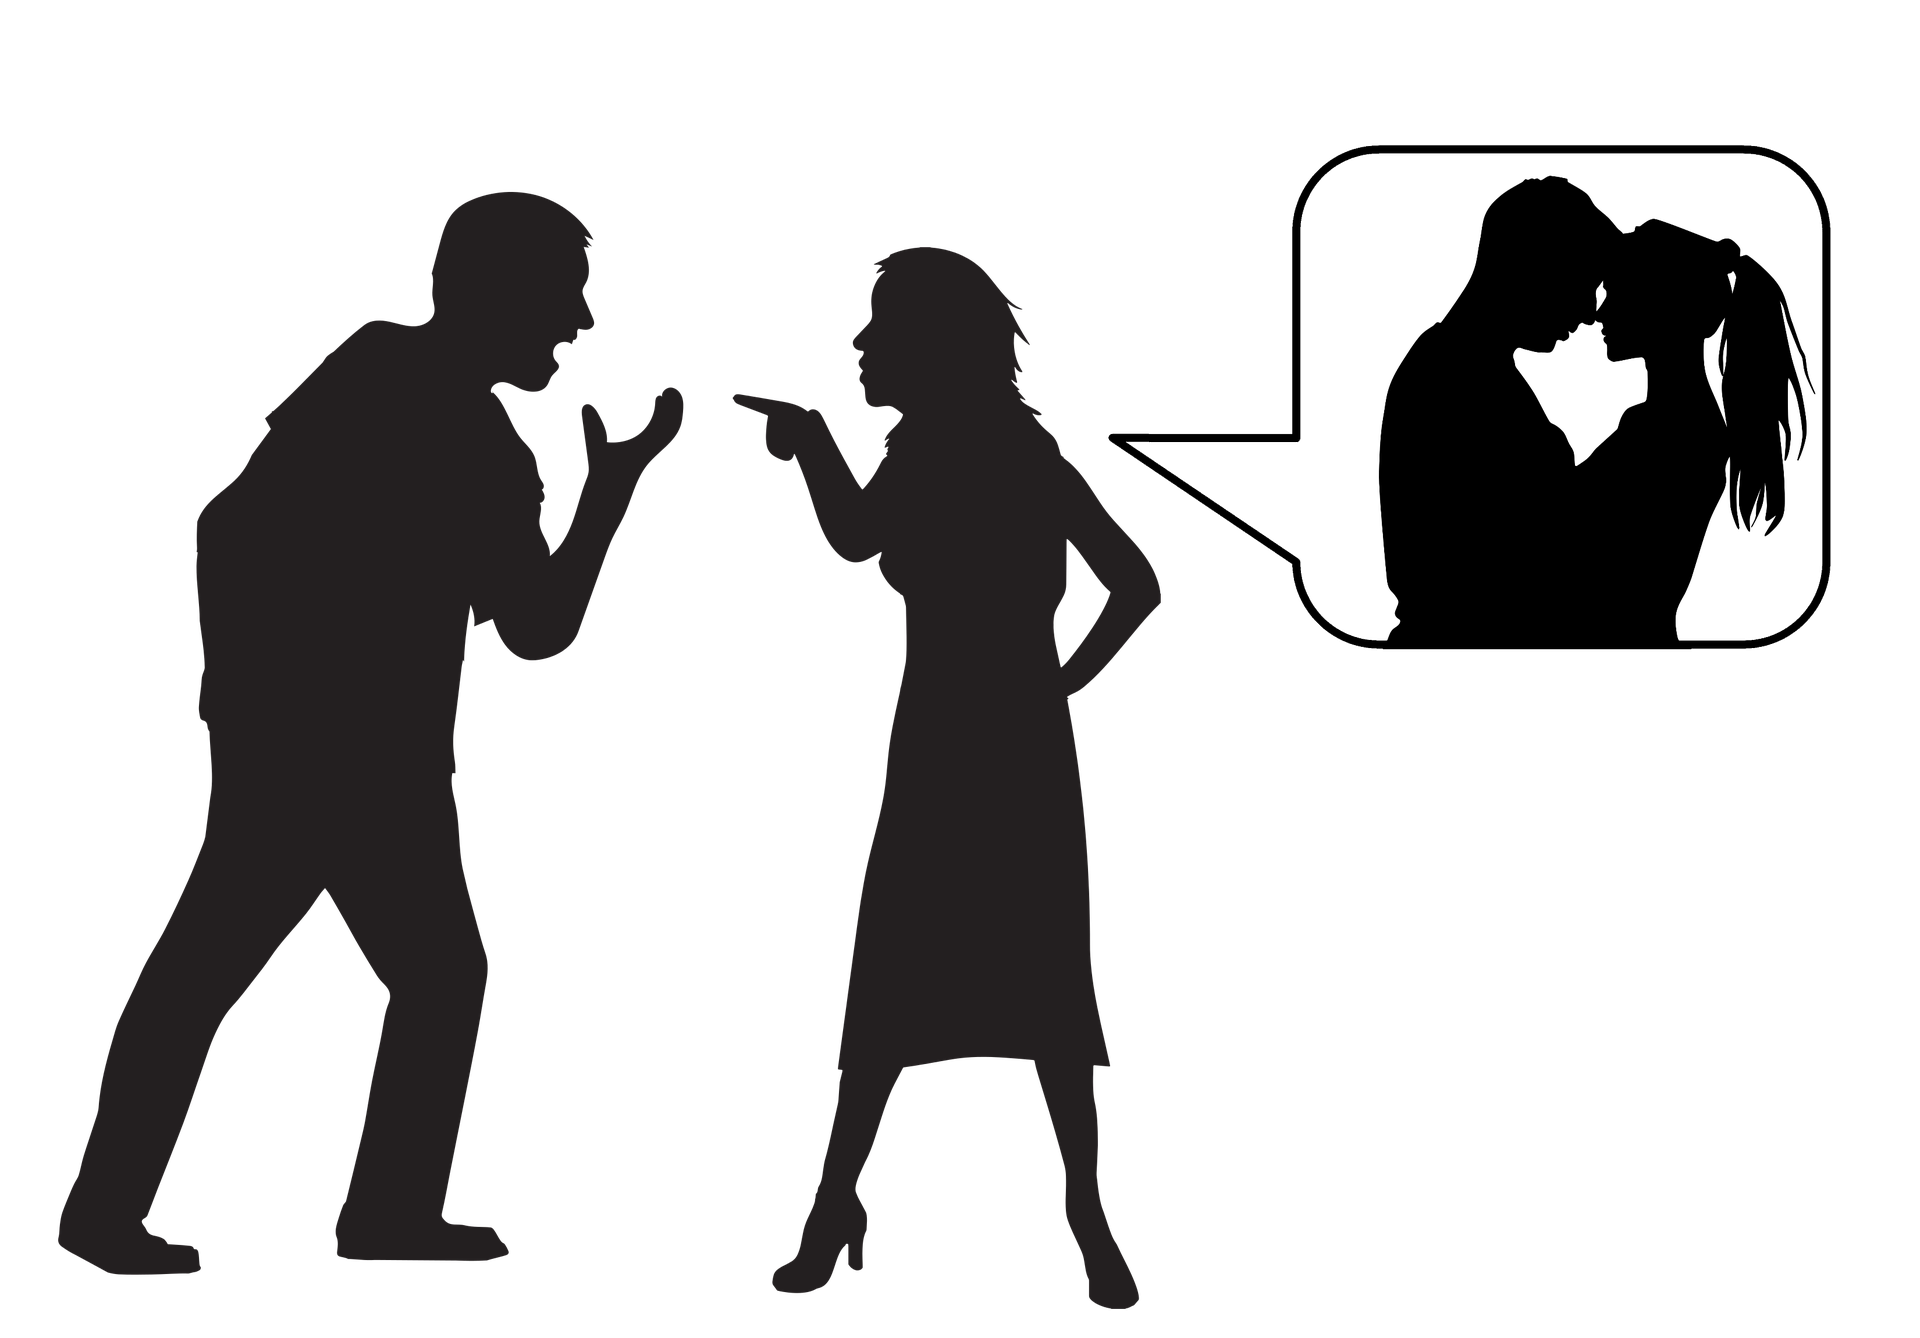 Counseling clipart difficult conversation. The benefits of family